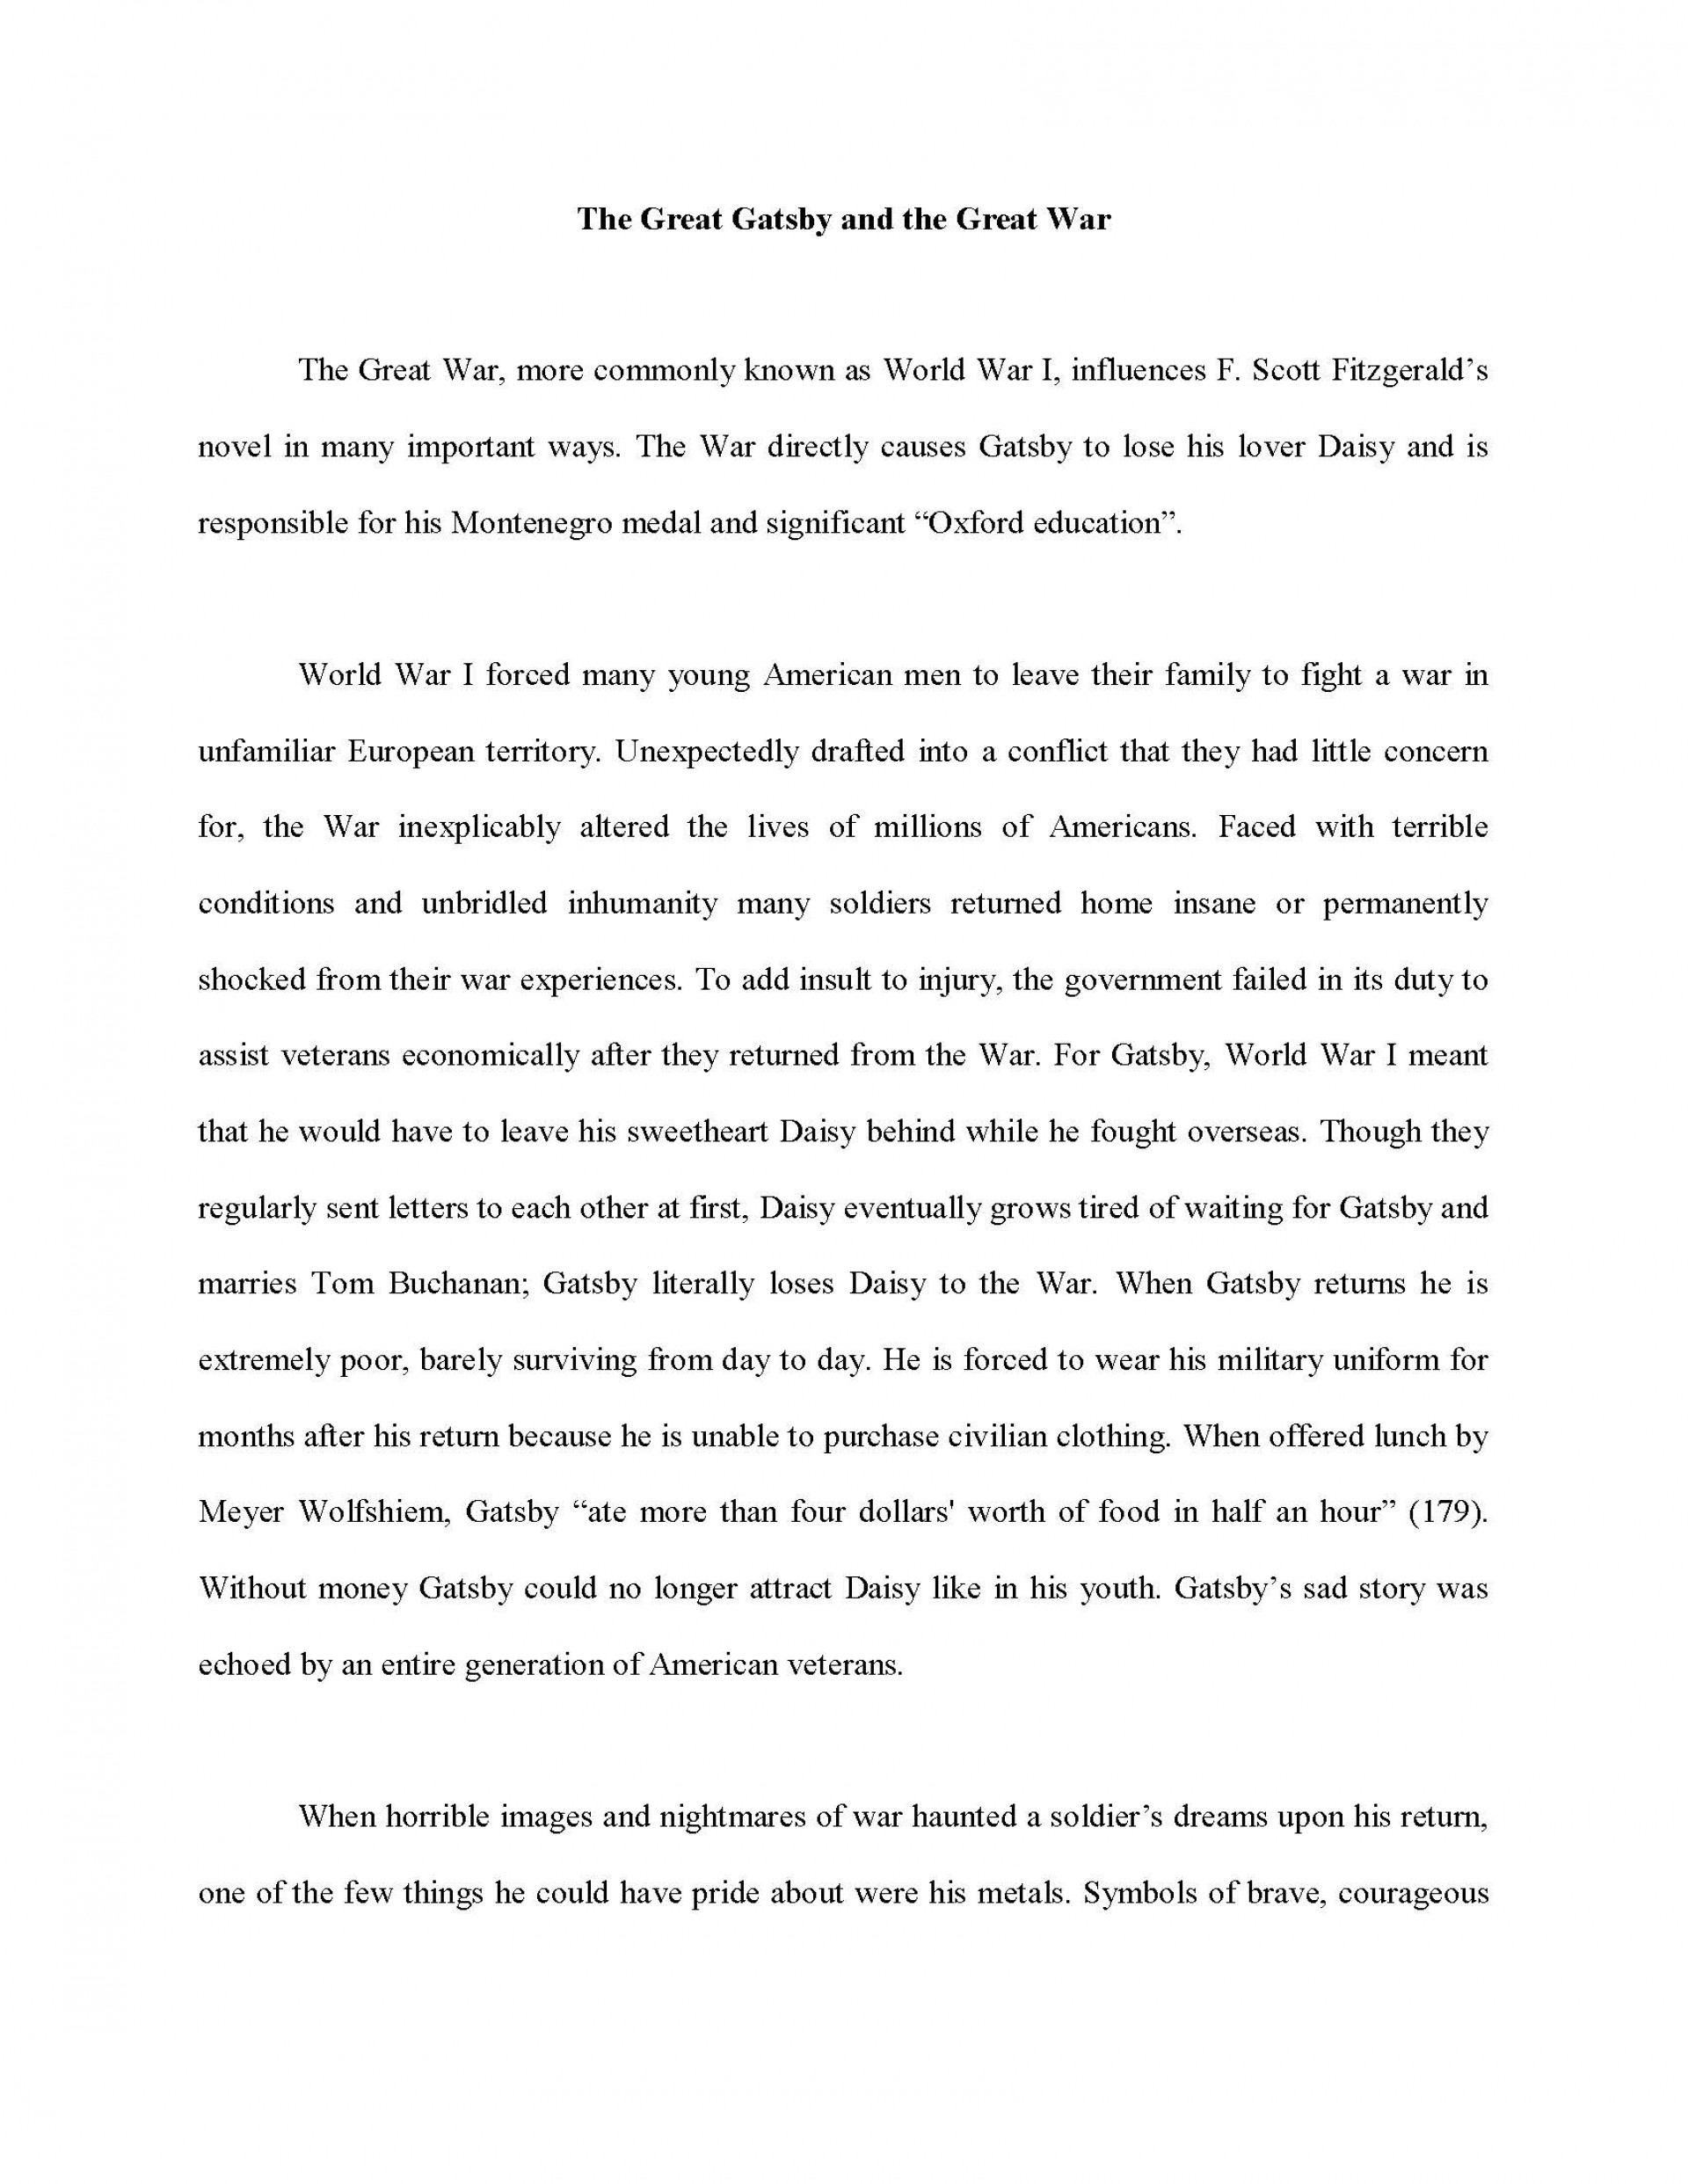 016 Informative Essay Sample Writing Satirical Top A Examples Of Satire Topics To Write On Essays 1920